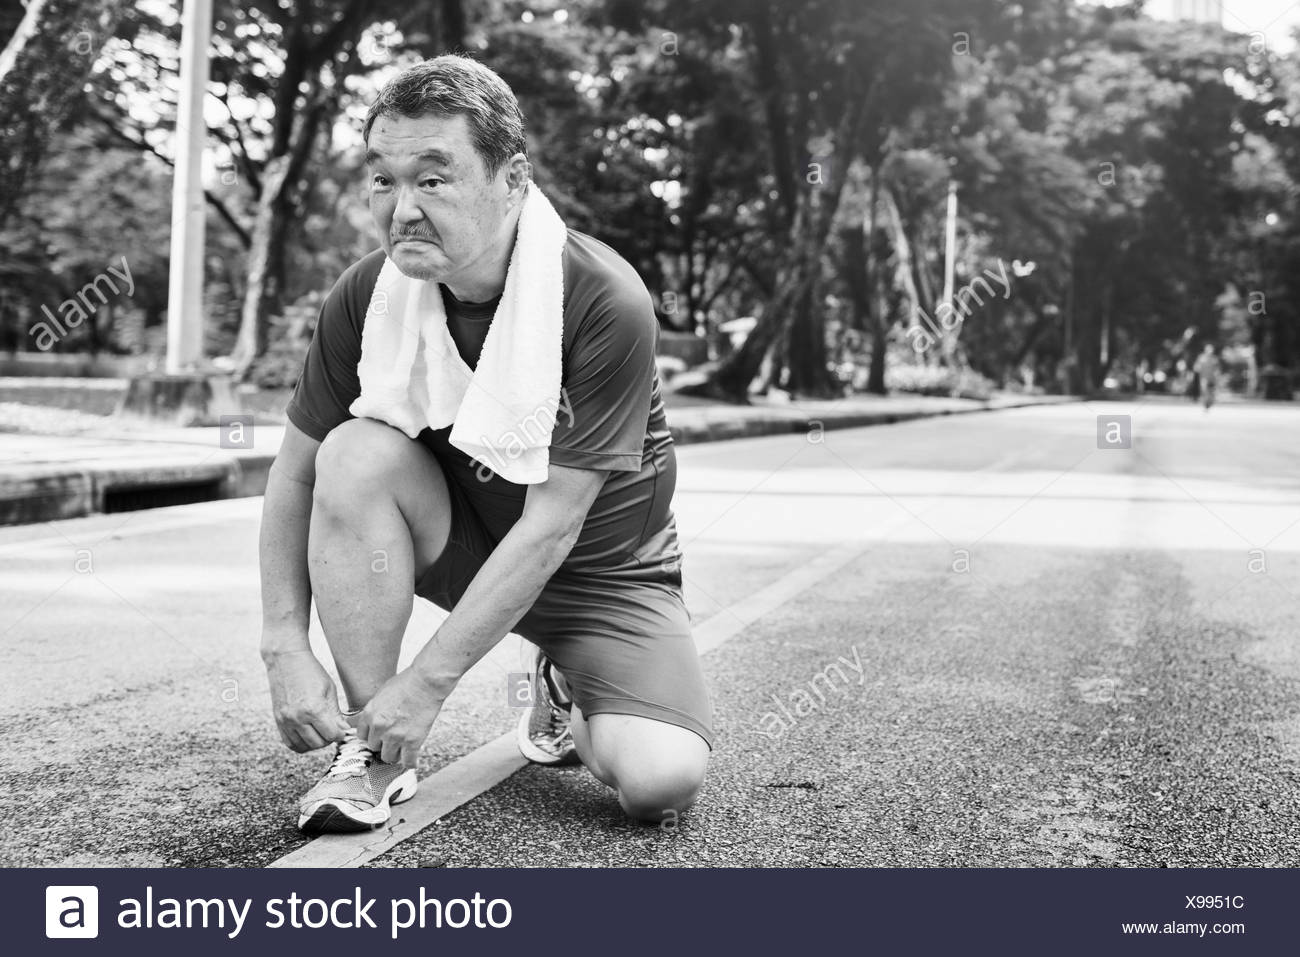 Senior Adult Jogging Running Exercise Sport Activity Concept - Stock Image